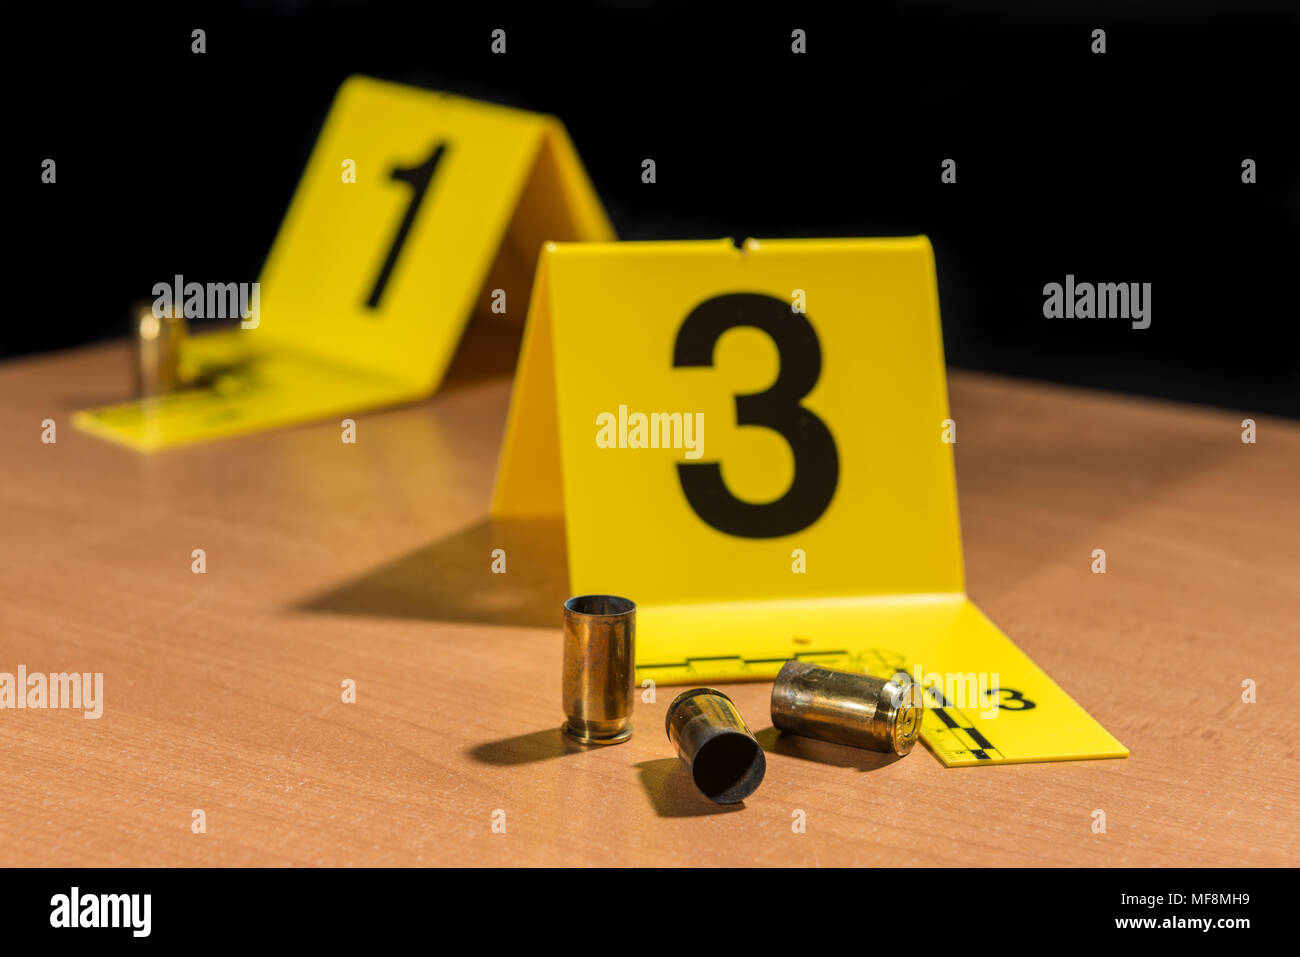 Expended bullet casings on a wood surface marked by crime scene evidence markers. - Stock Image